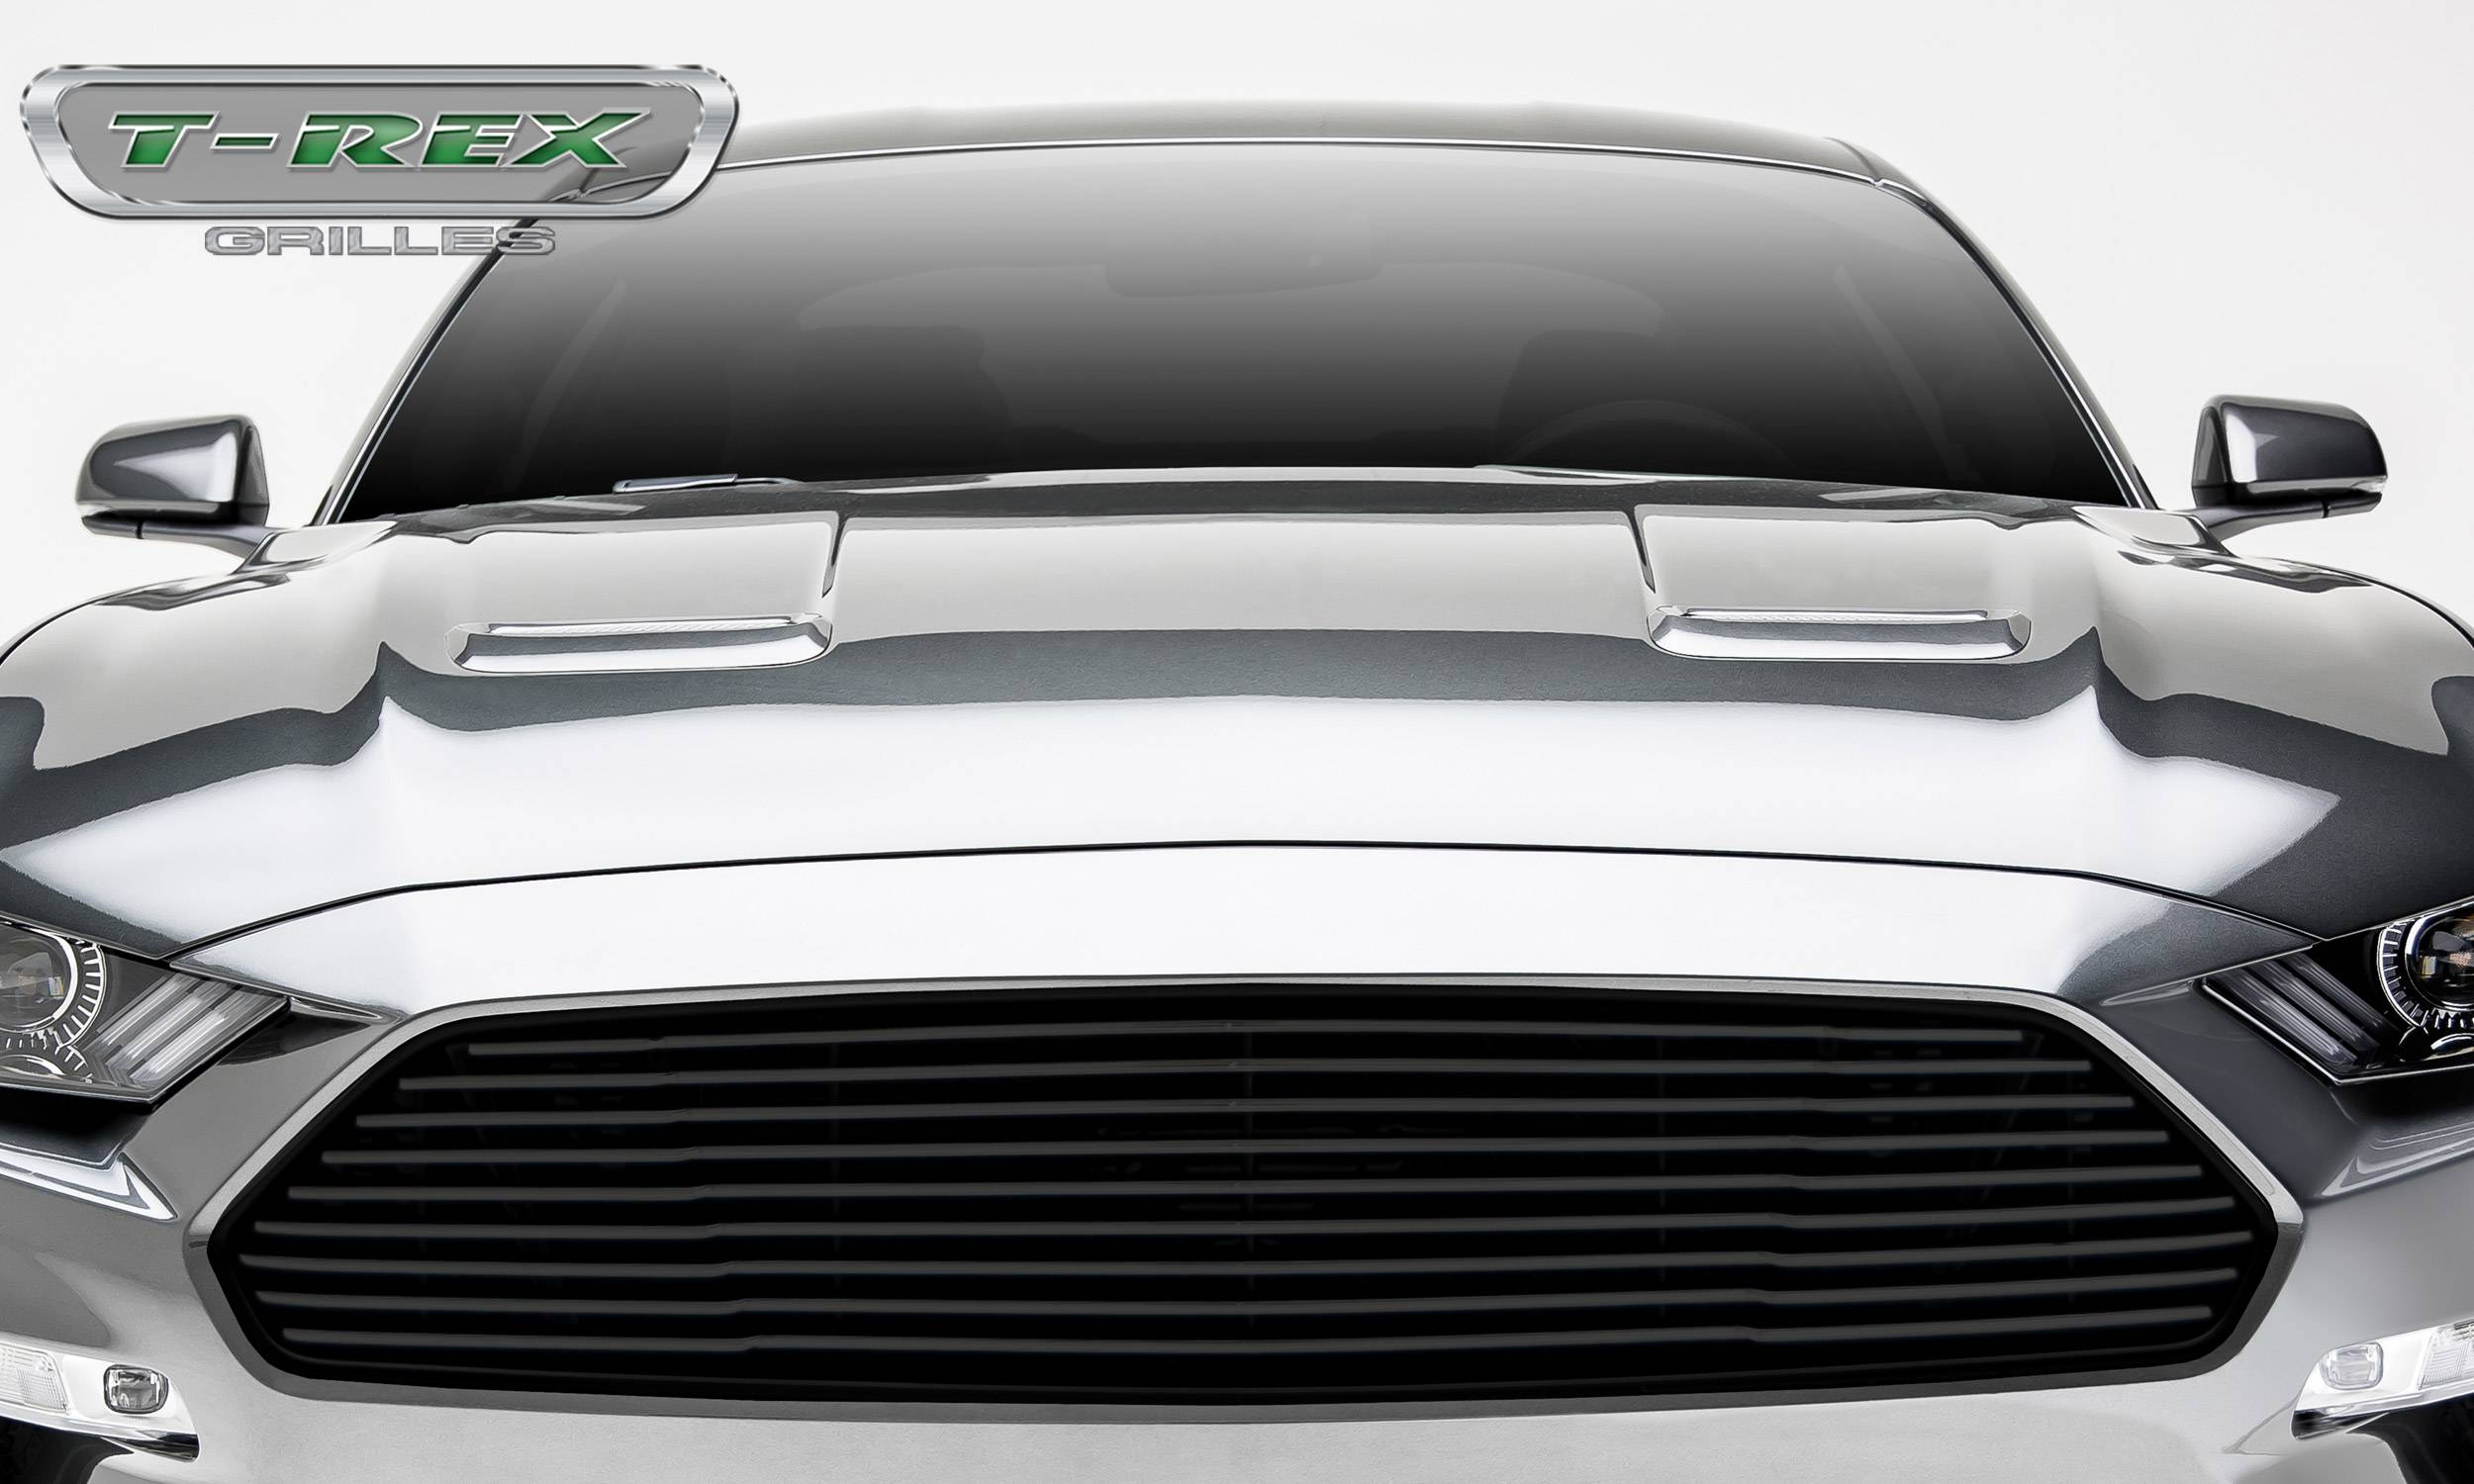 Ford Mustang GT - Billet Grille - Main, Overlay with Black Powder Coated Finish - Pt #6215501